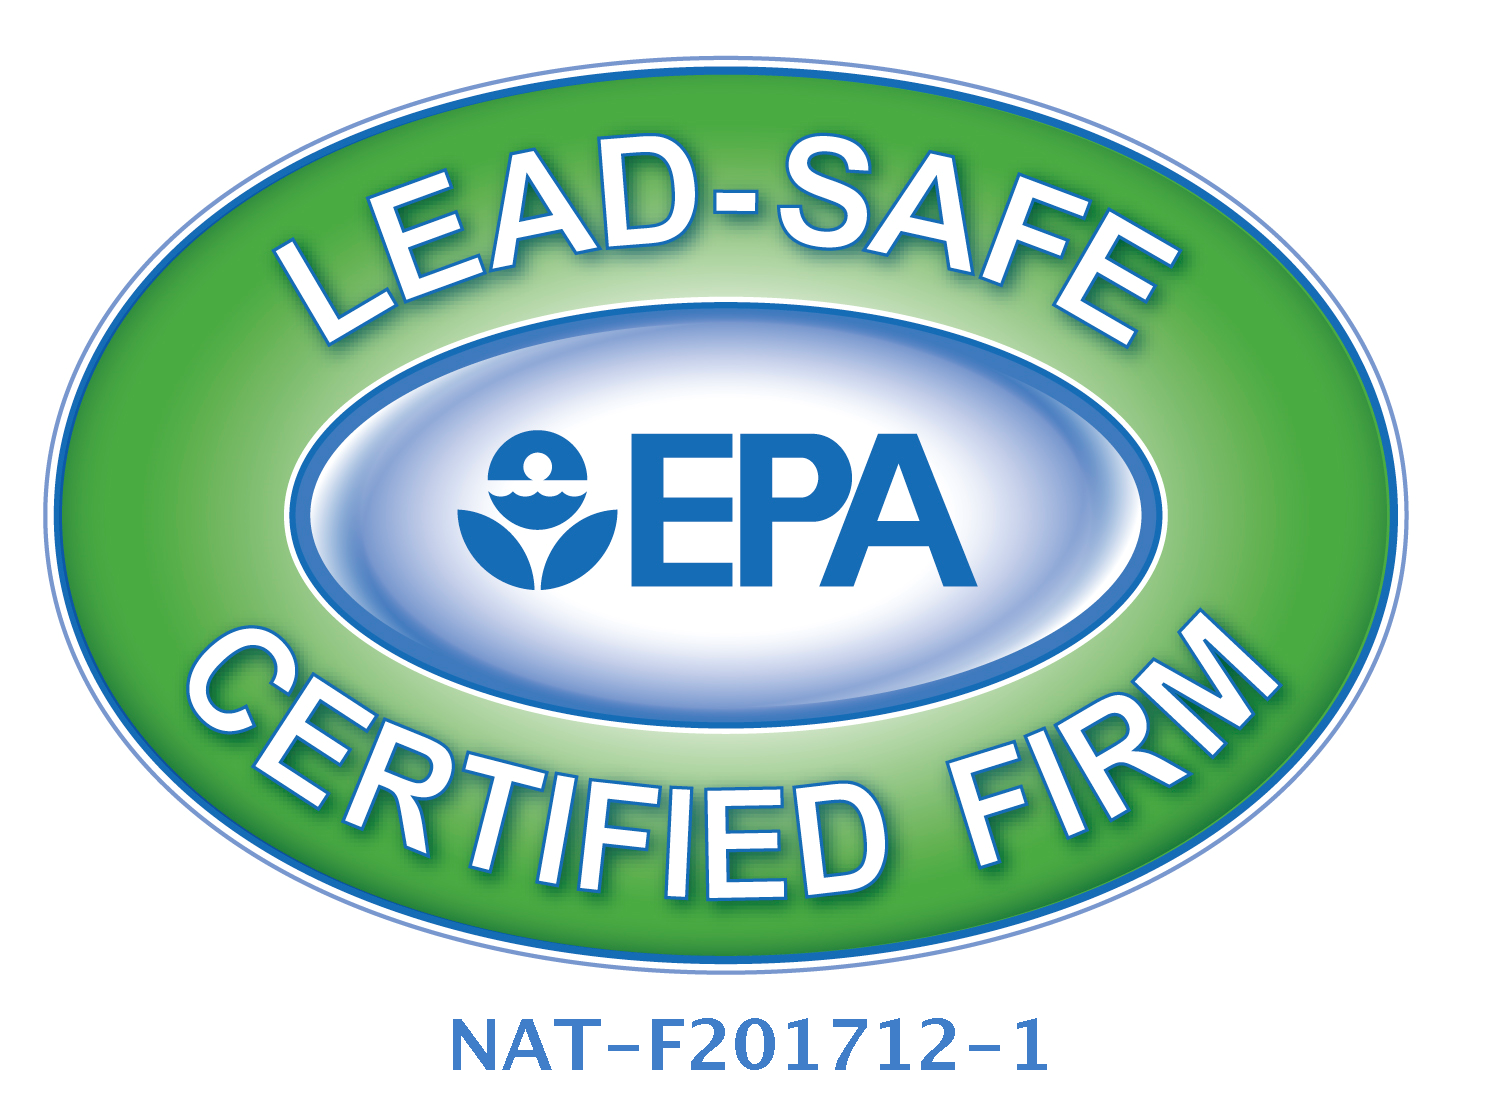 EPA Lead Safe Windows